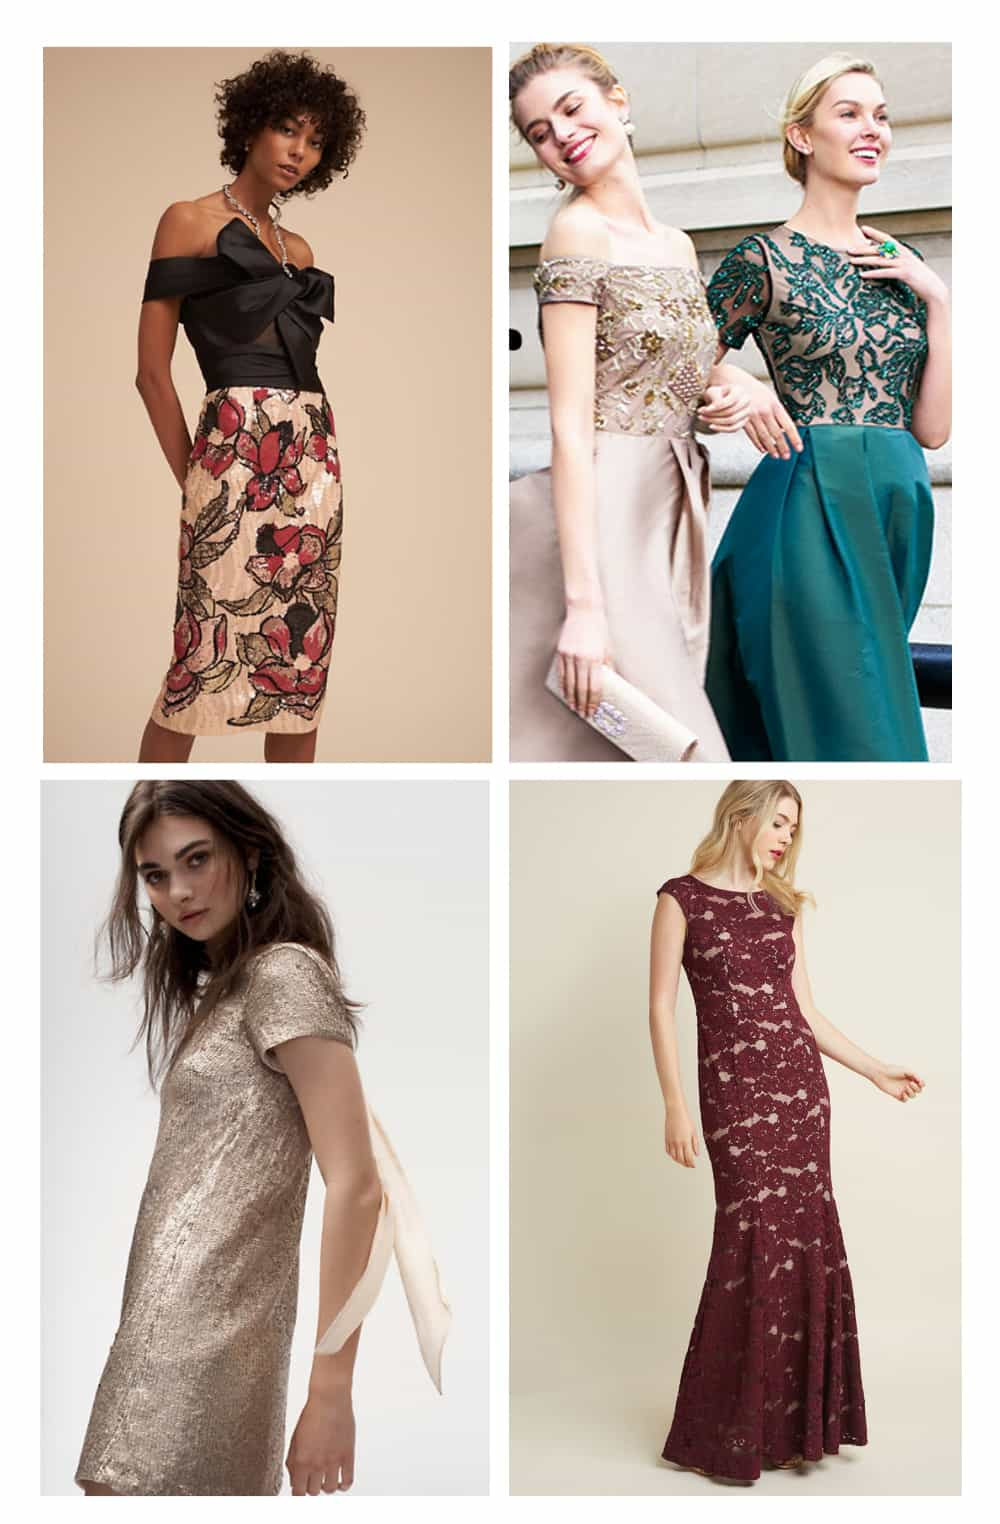 Cute dresses for holiday parties!